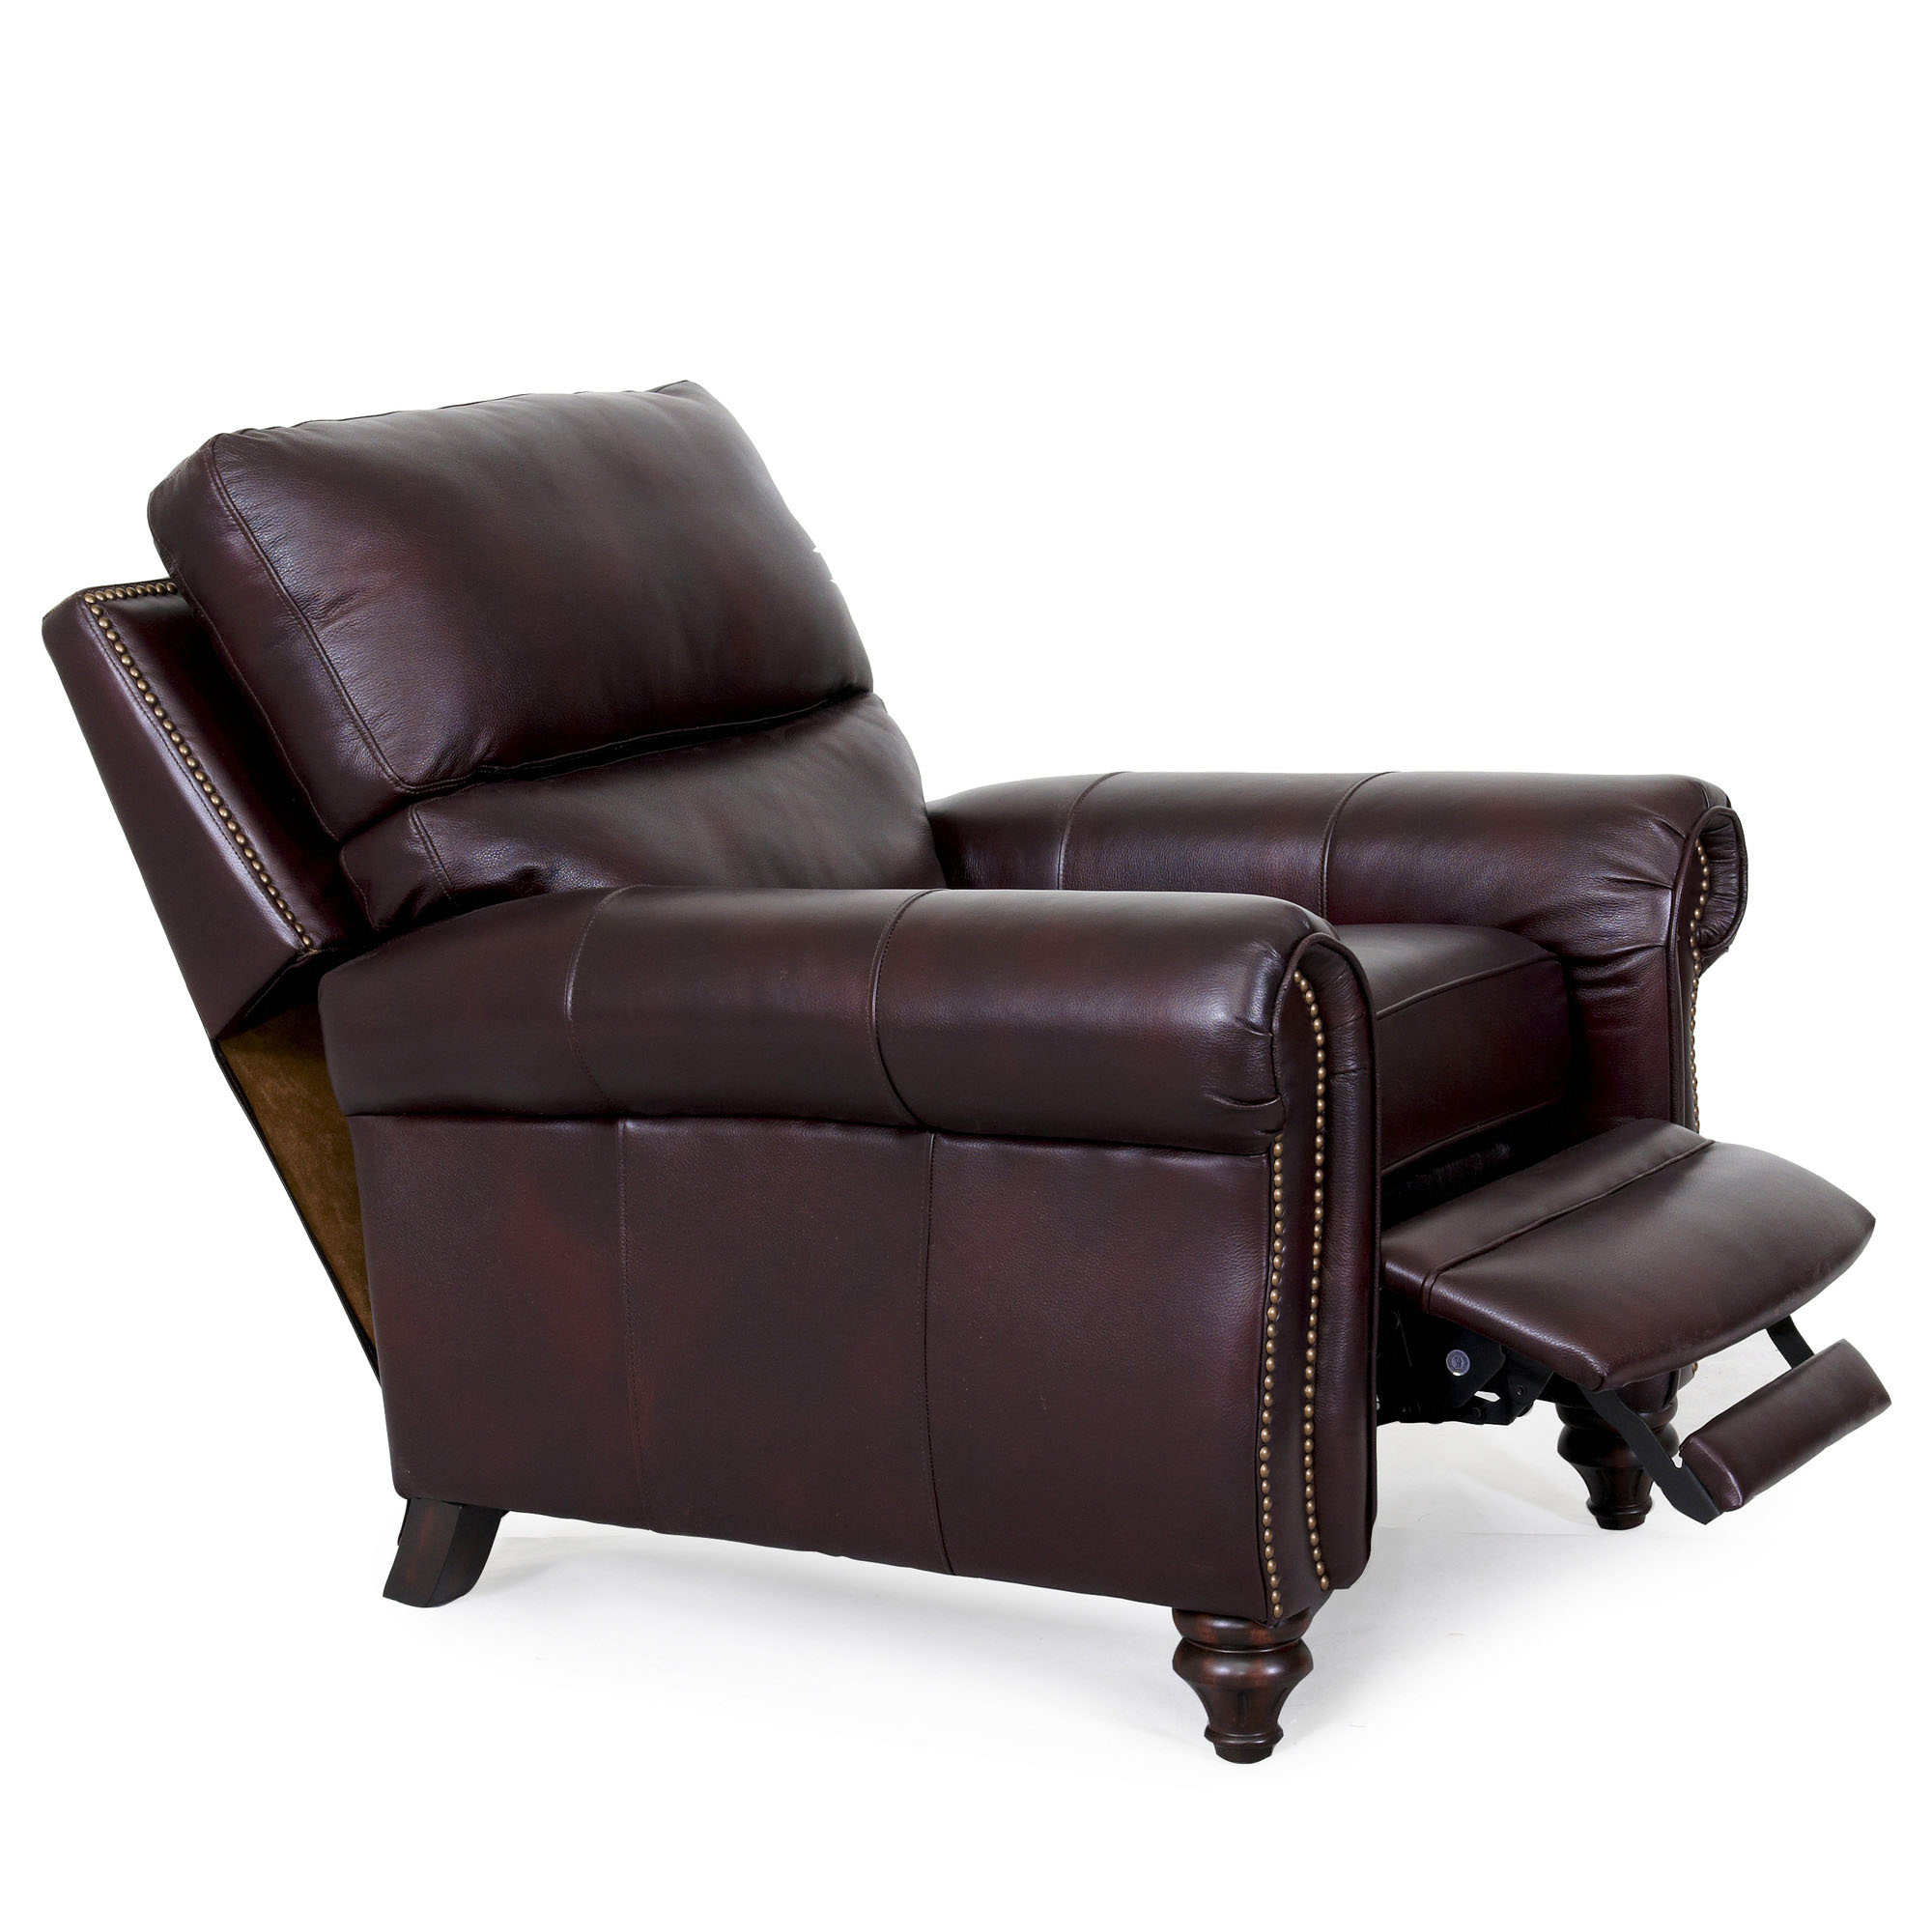 barcalounger dalton ii recliner chair leather recliner